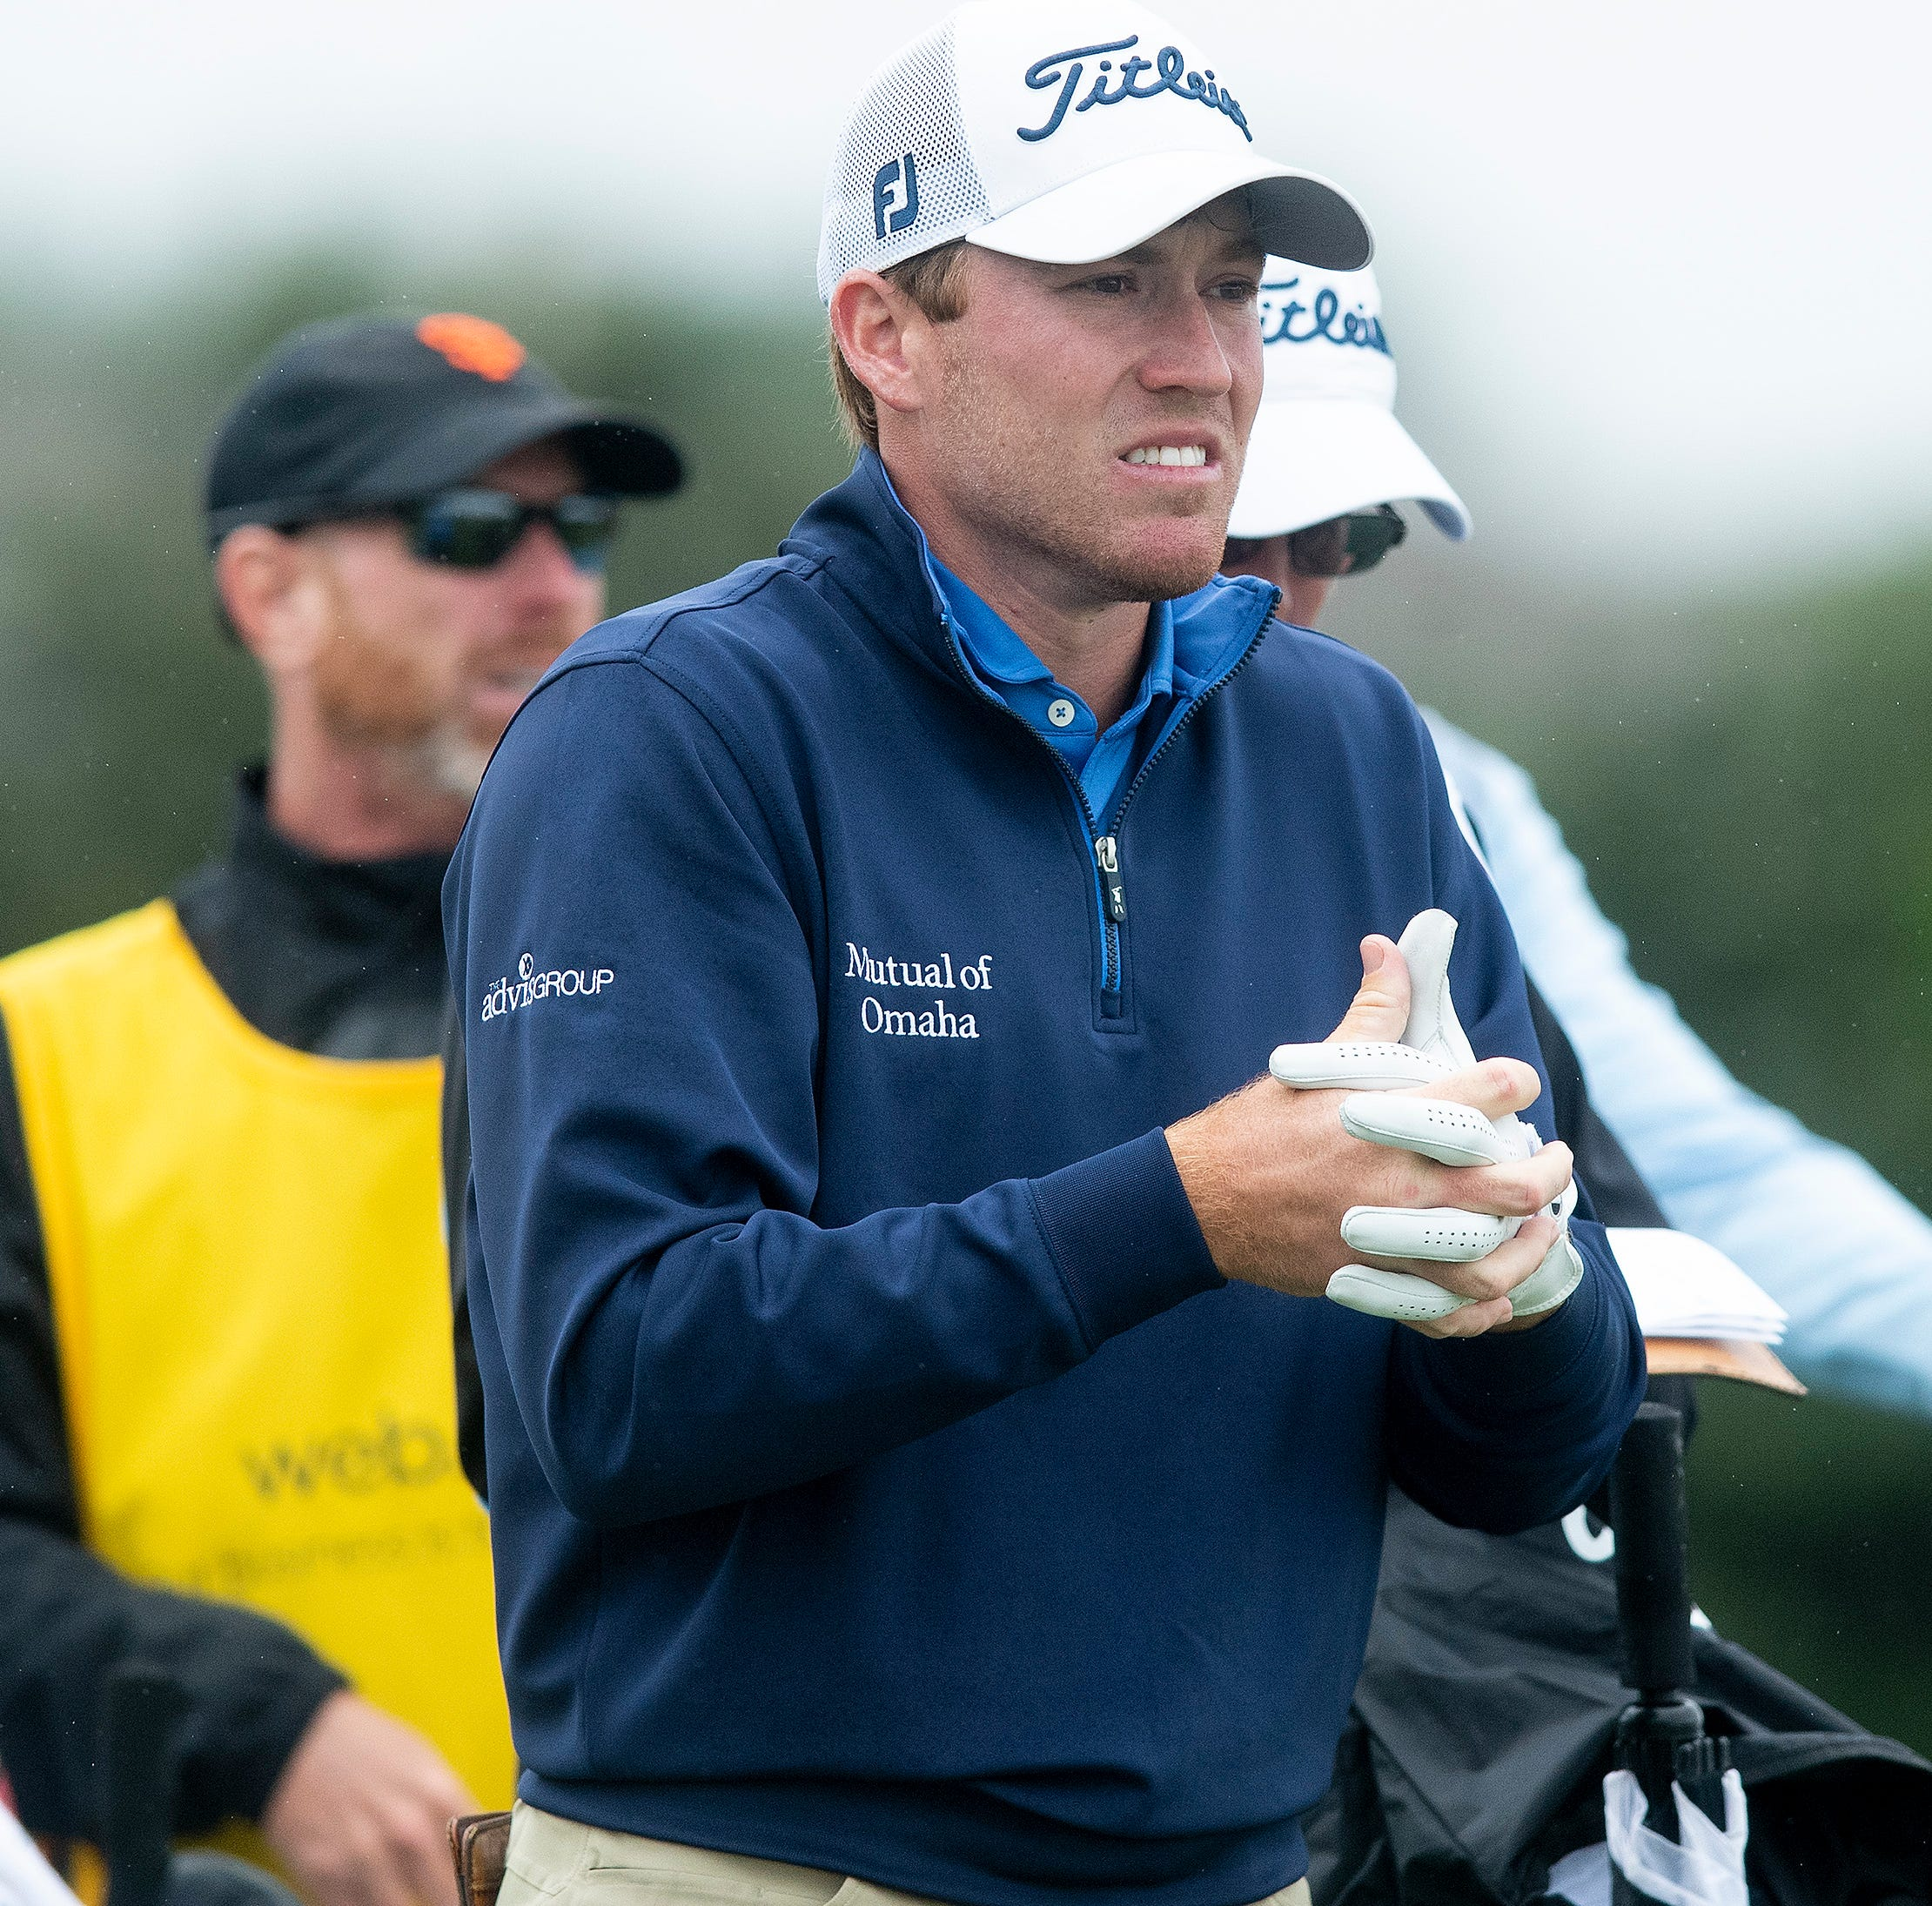 On the hunt: Shelton shines in cold, windy RTJ second round